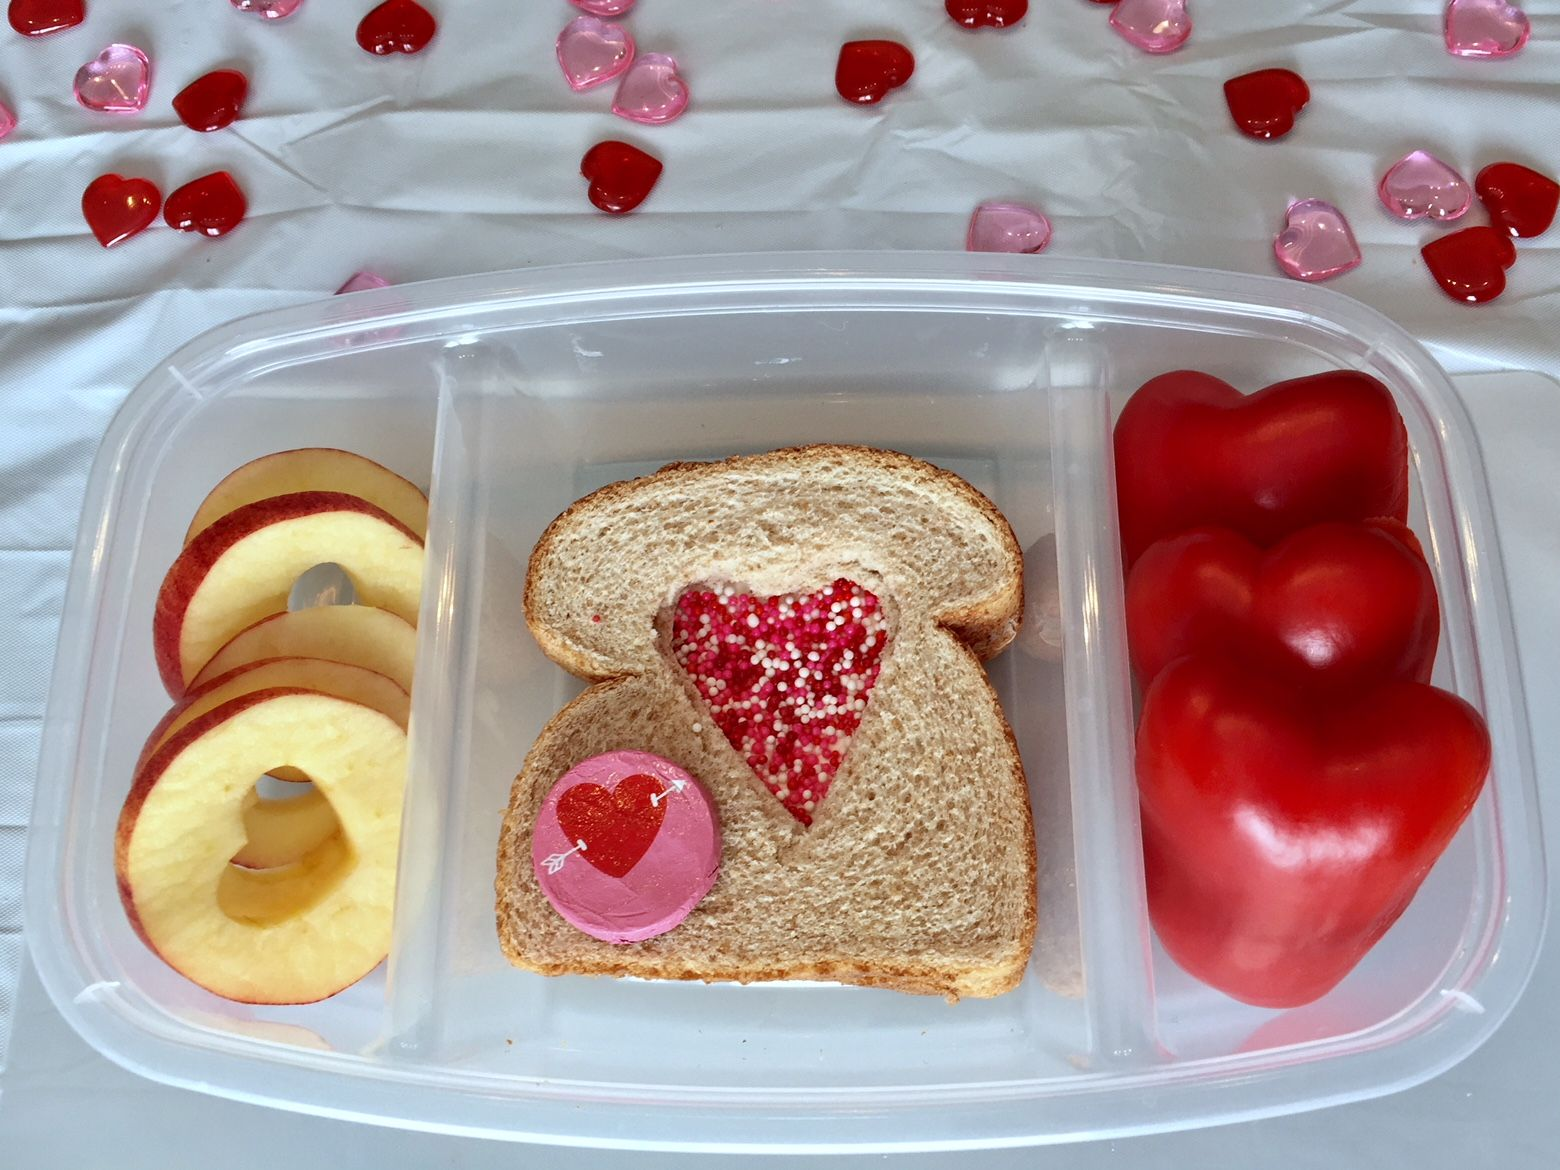 Valentine's Day Lunch Idea #1